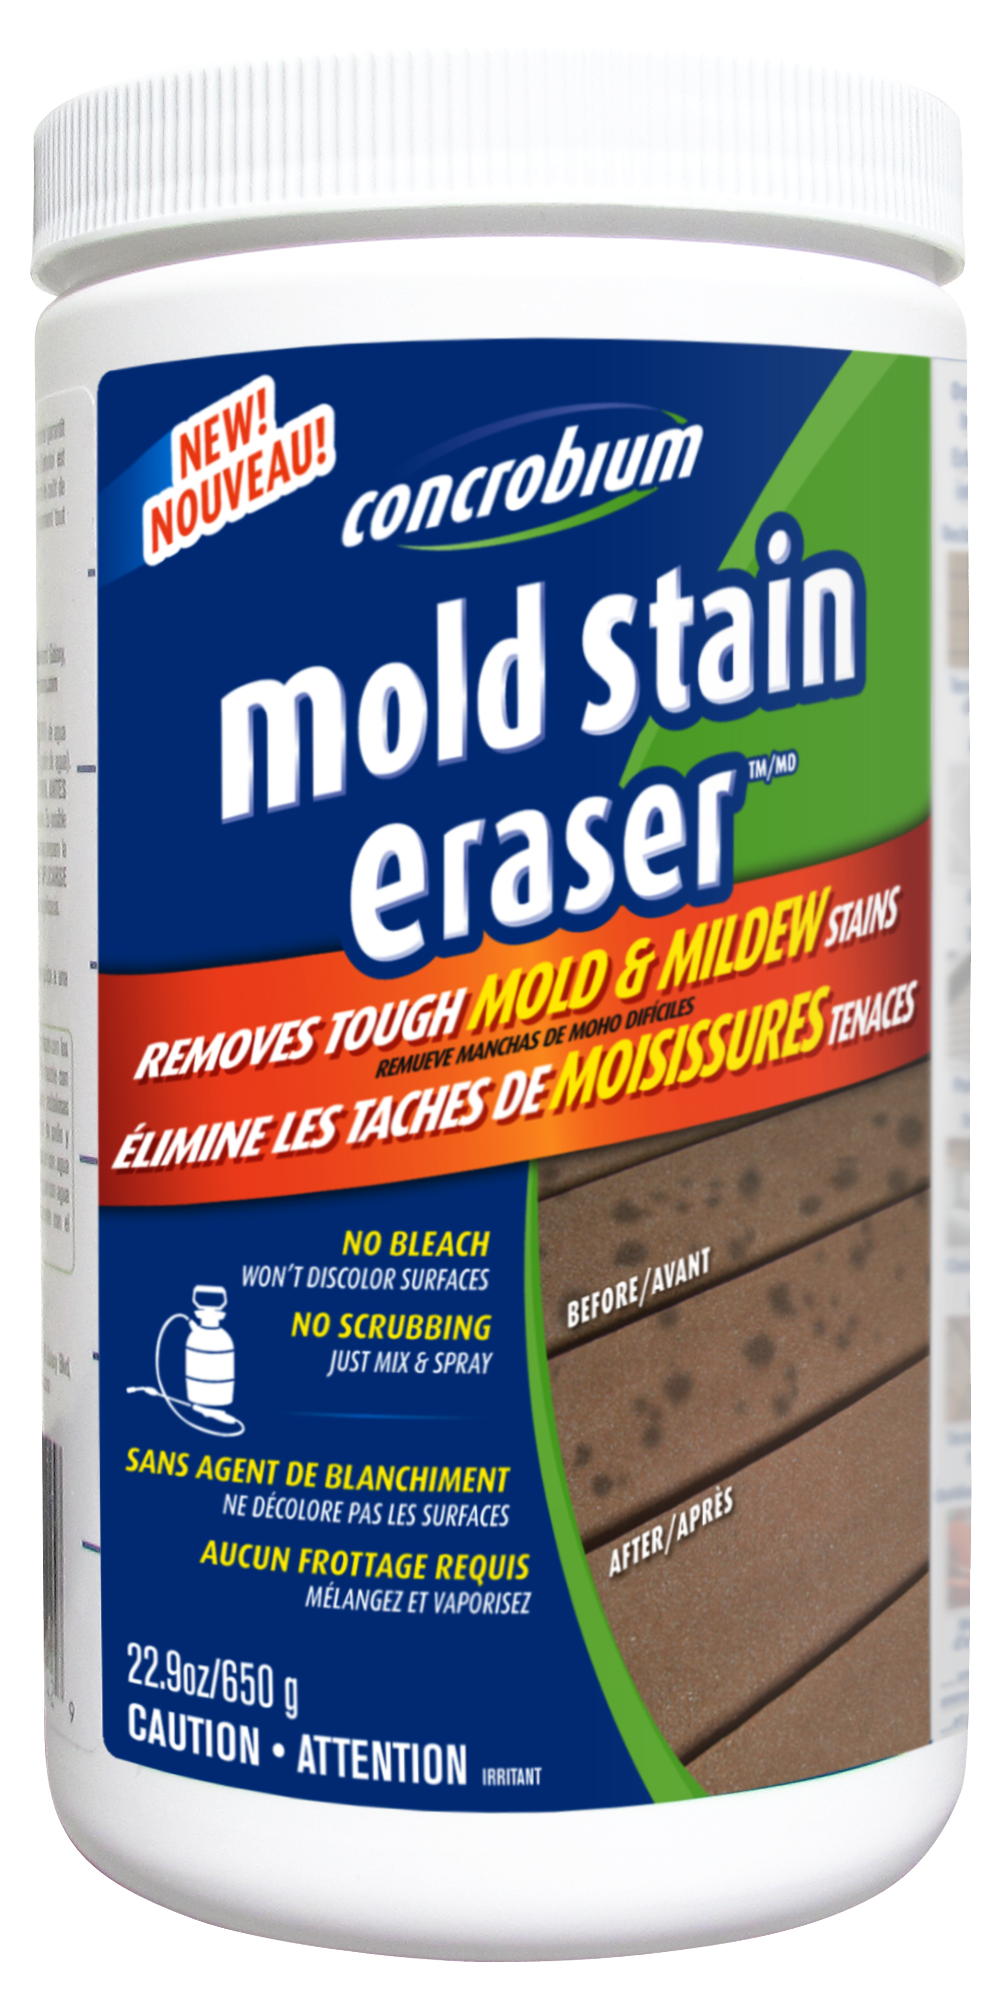 Concrobium Mold Stain Eraser Remove Black Stains With